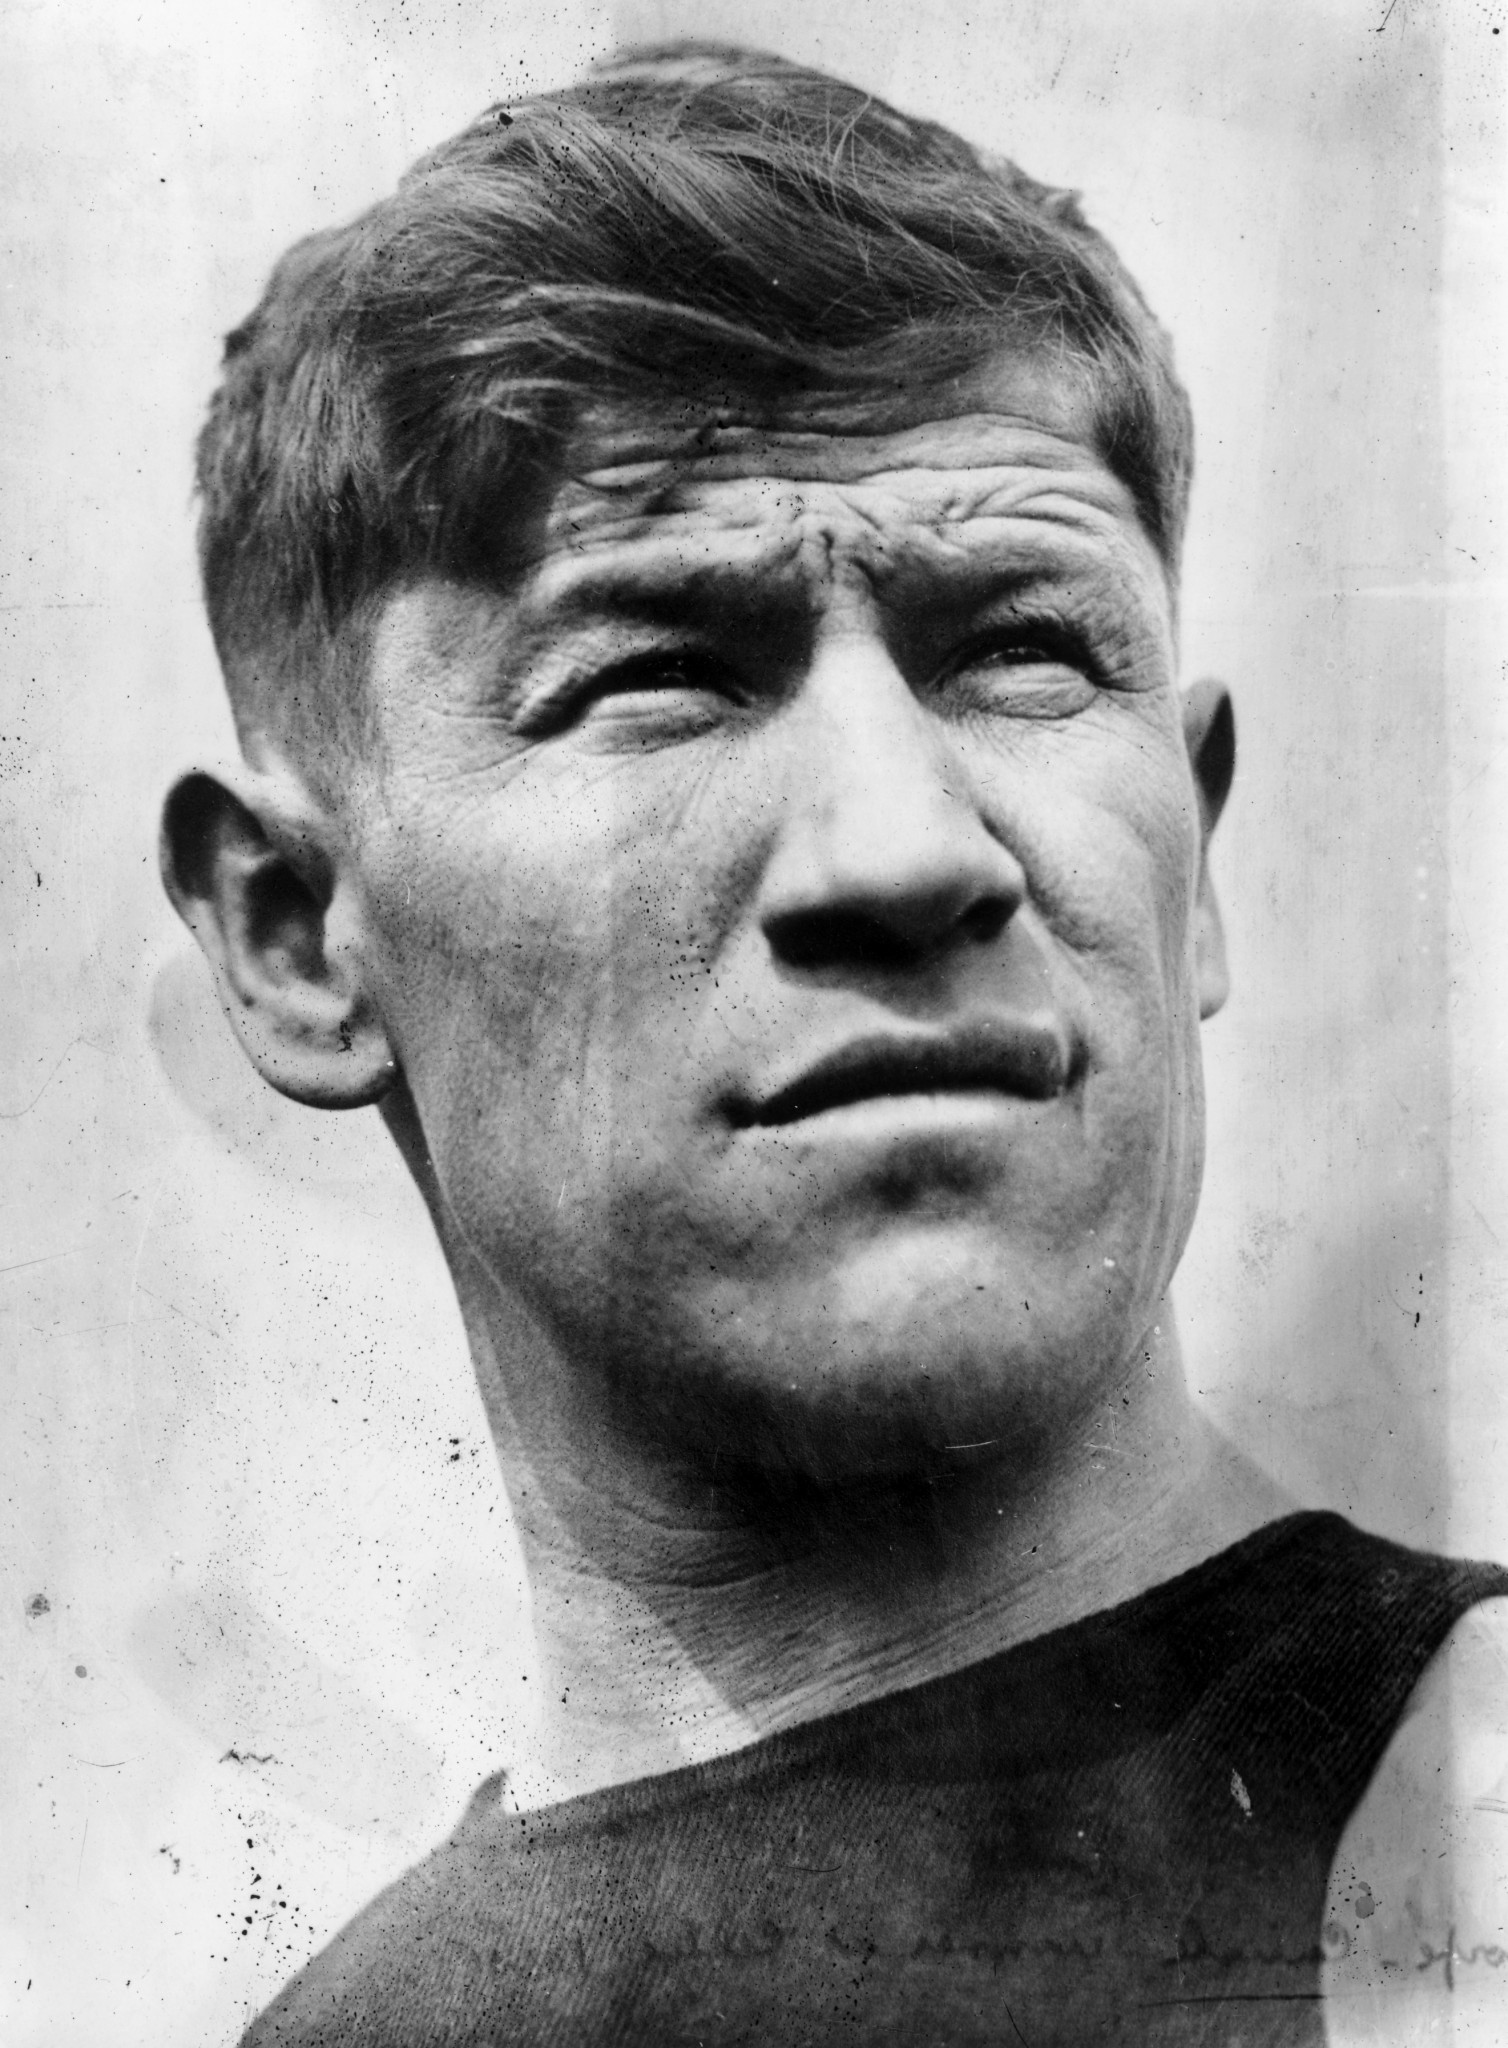 Multi-talented Jim Thorpe, double Olympic champion in 1912, was inducted into the Pro Football Hall of Fame in 1963 ©Getty Images